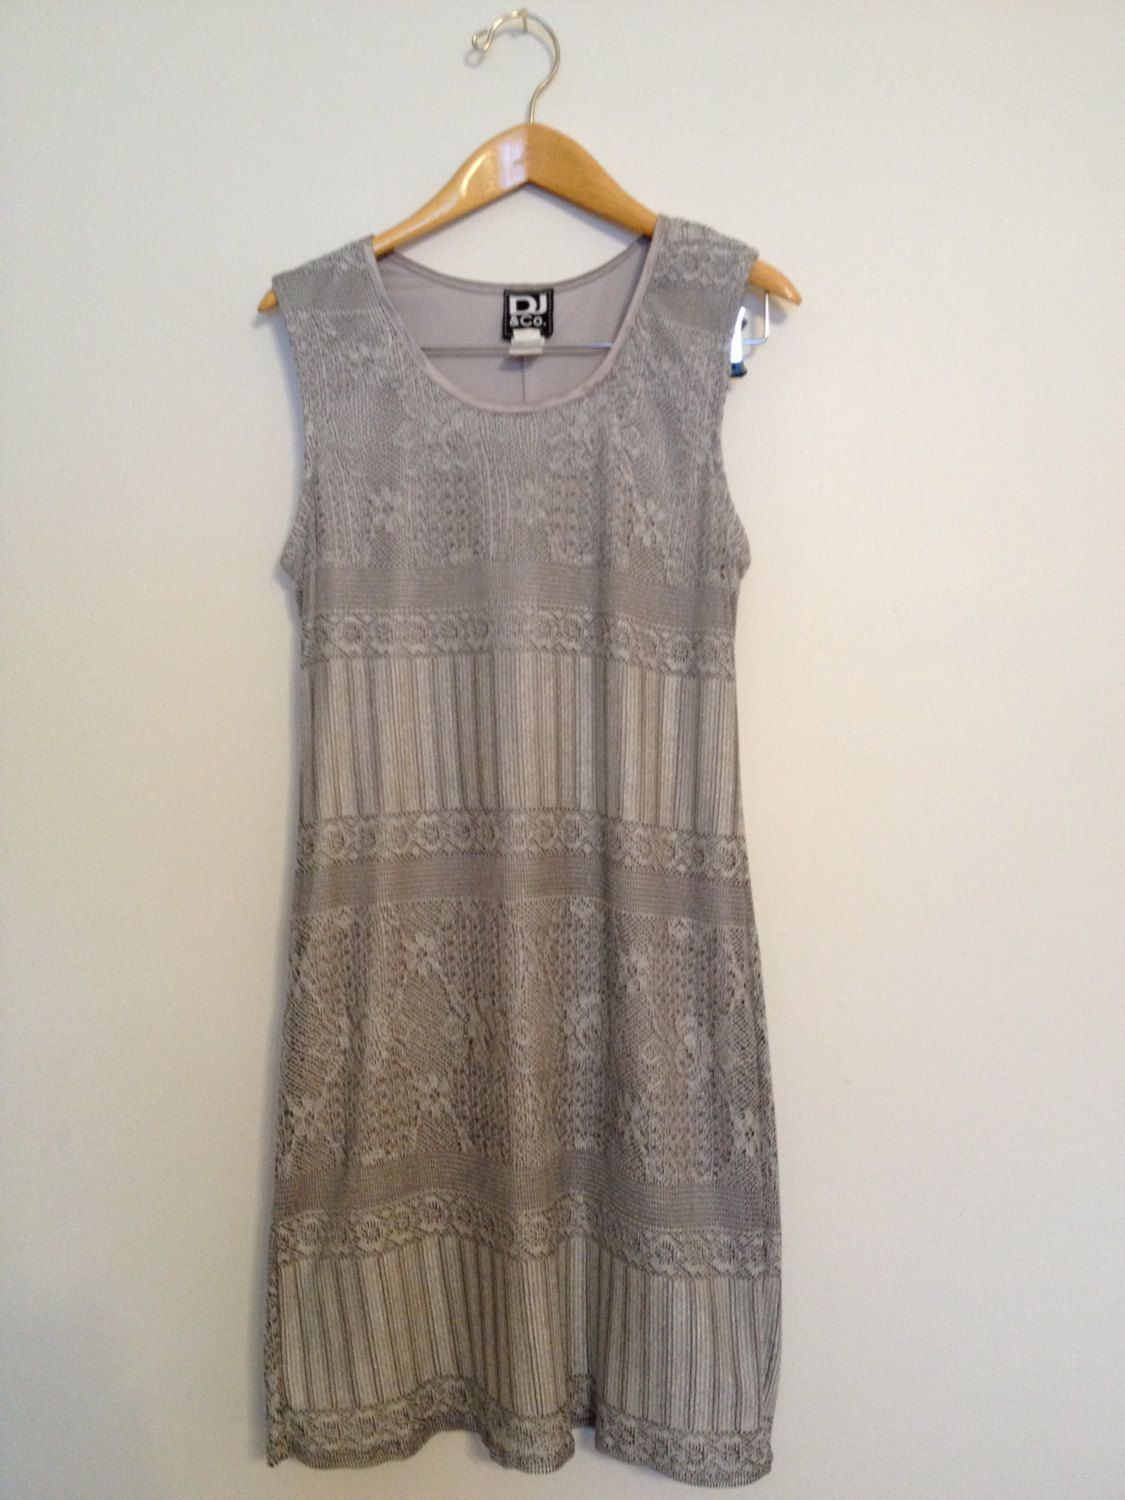 Grey Sleeveless Patterned Dress.